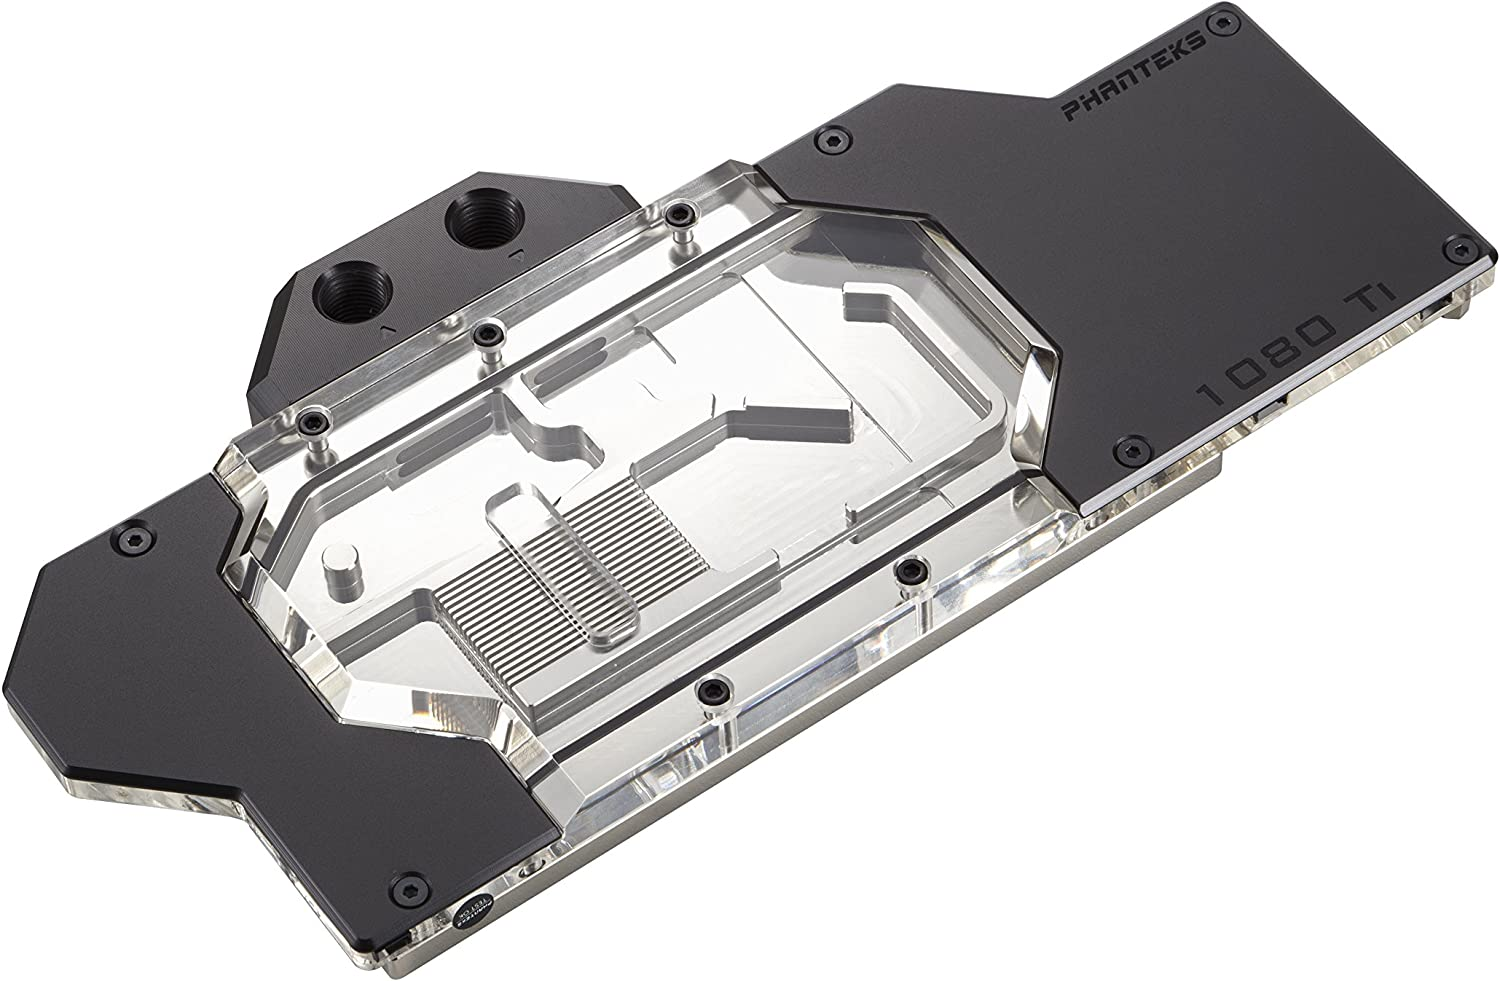 Phanteks PH-GB1080Ti_BK01 Glacier G1080 Founders Edition Ti Water Block